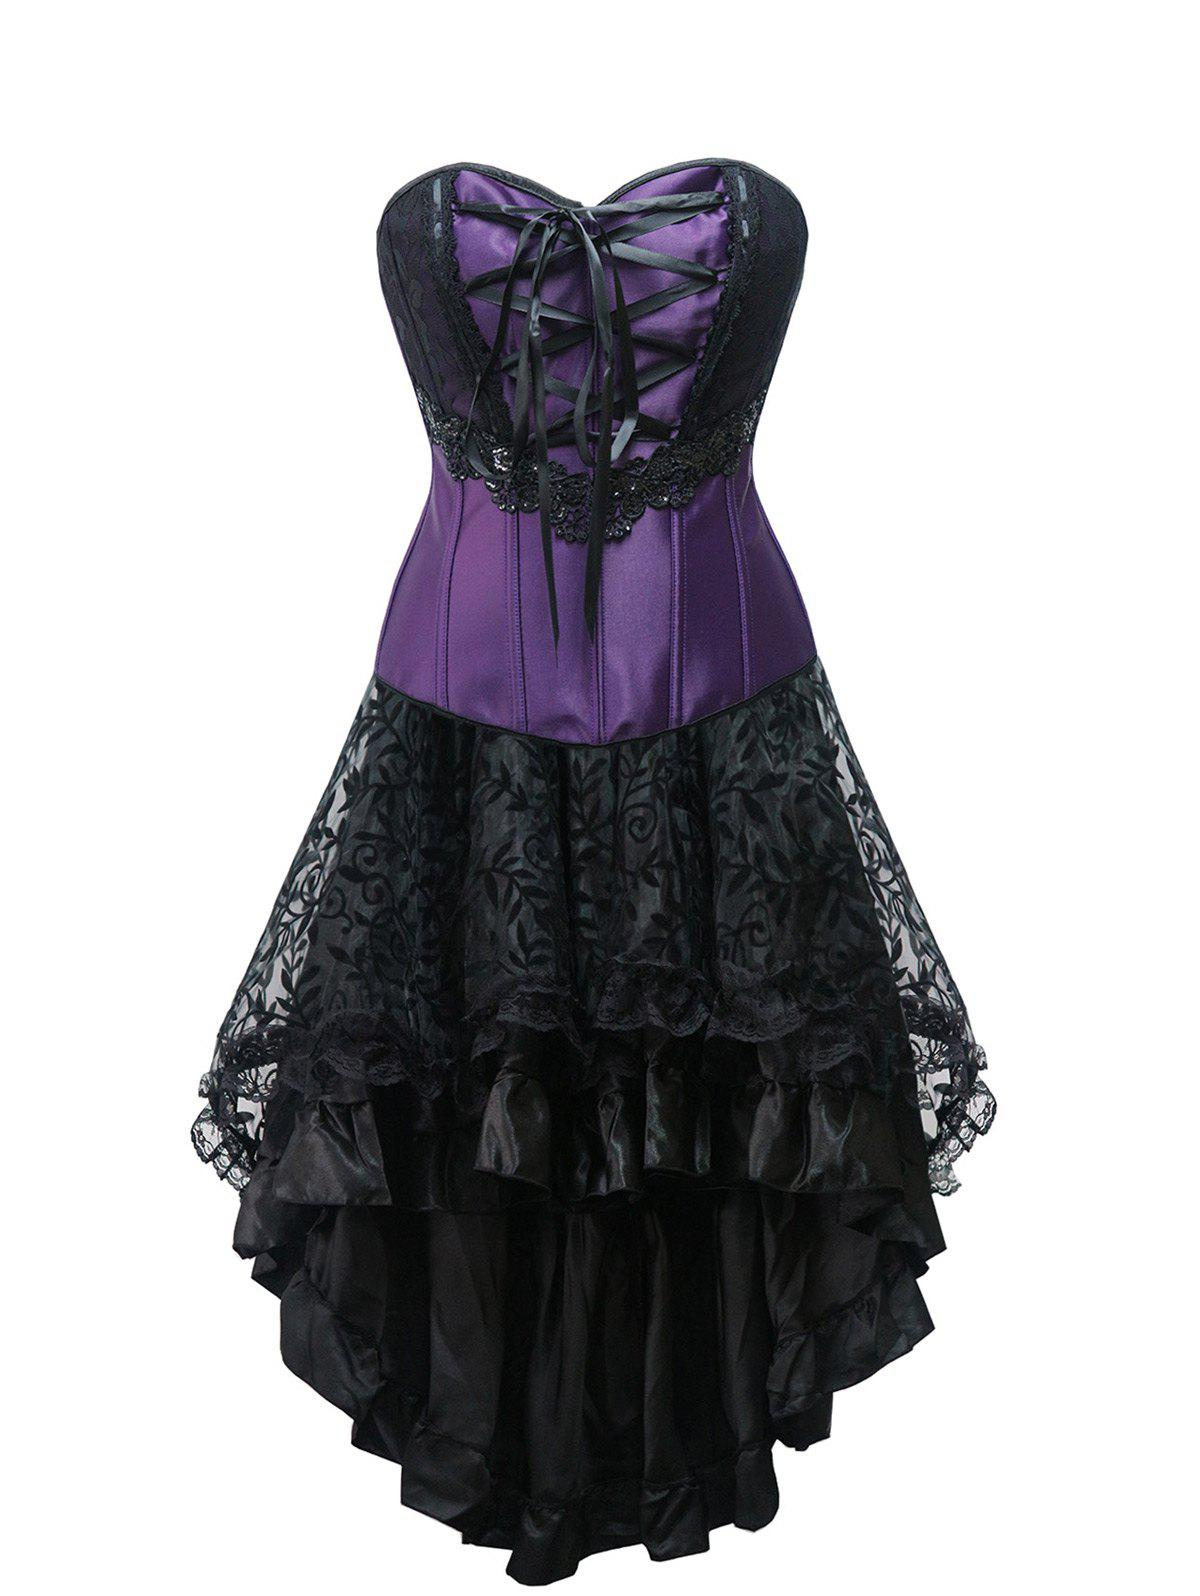 Lace Up High Low Strapless Corset Dress - PURPLE XL